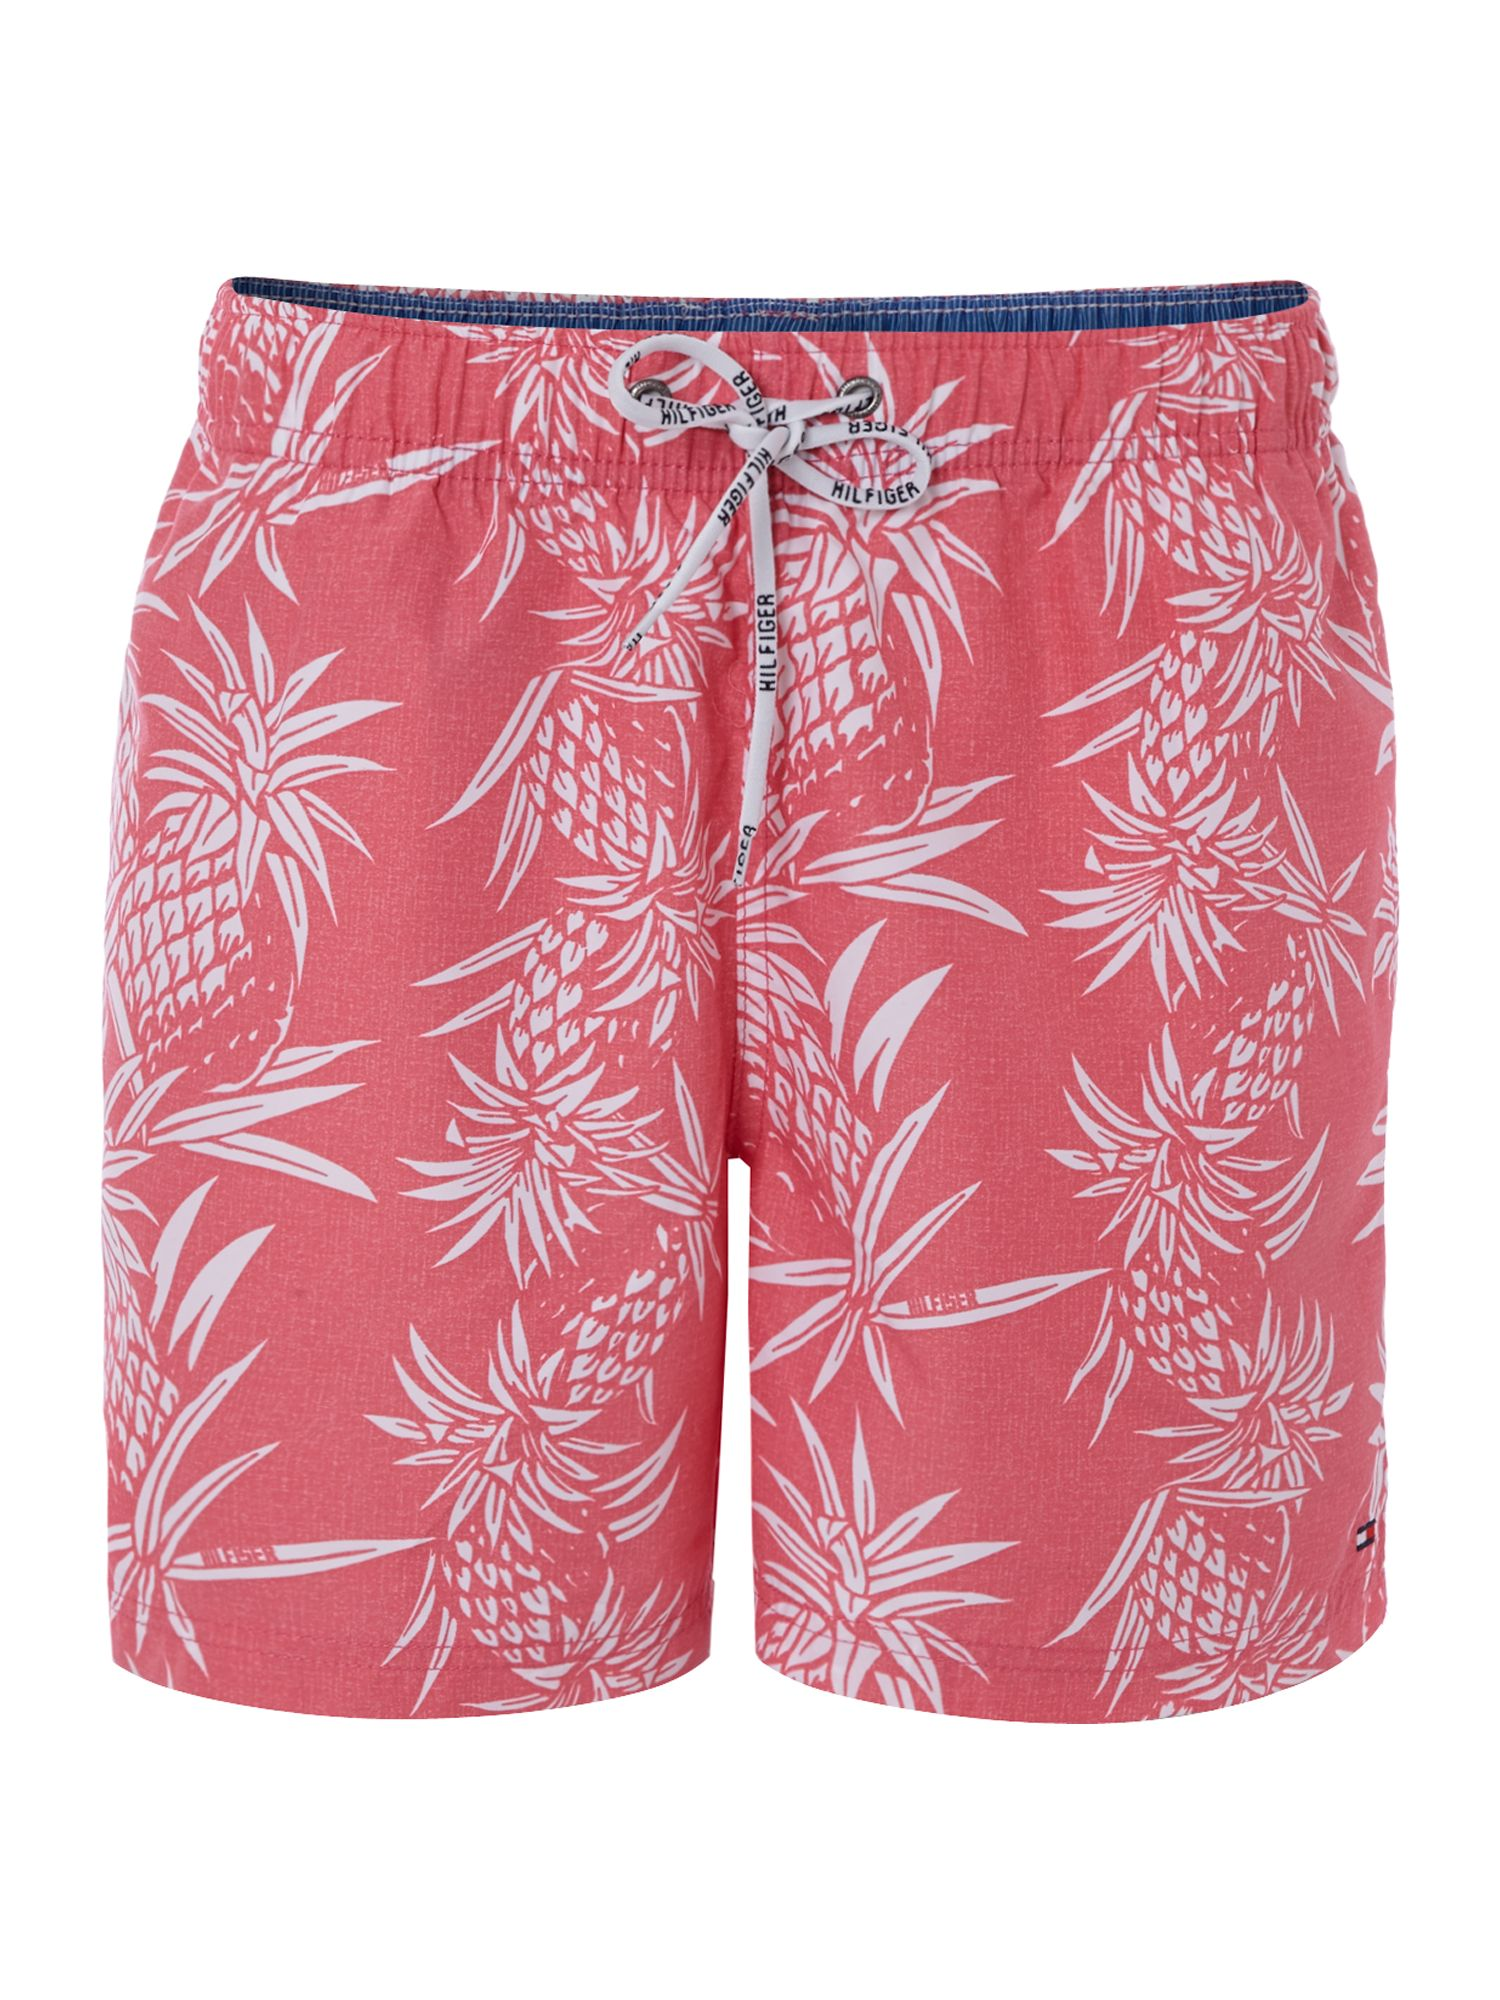 Newman pineapple print trunk